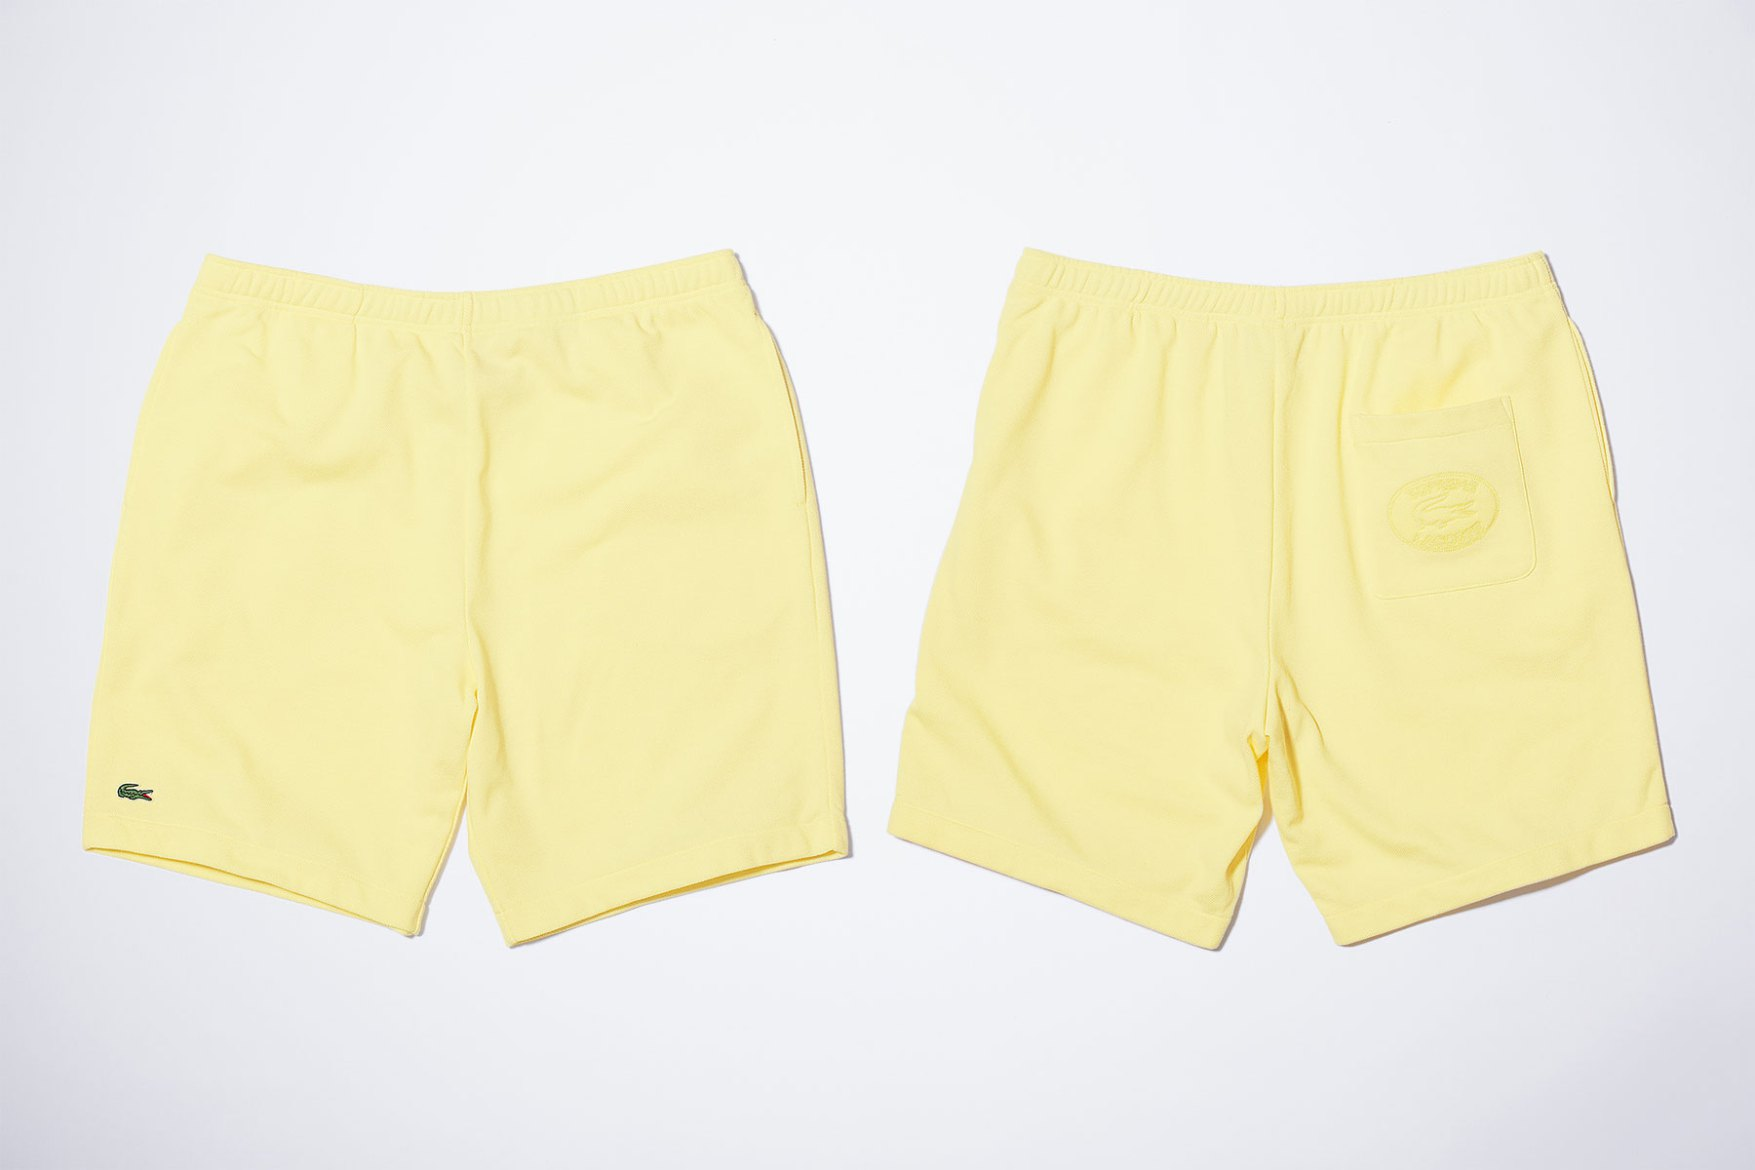 lacoste-supreme-yellow-shorts-2017-spring-summer-17.jpg